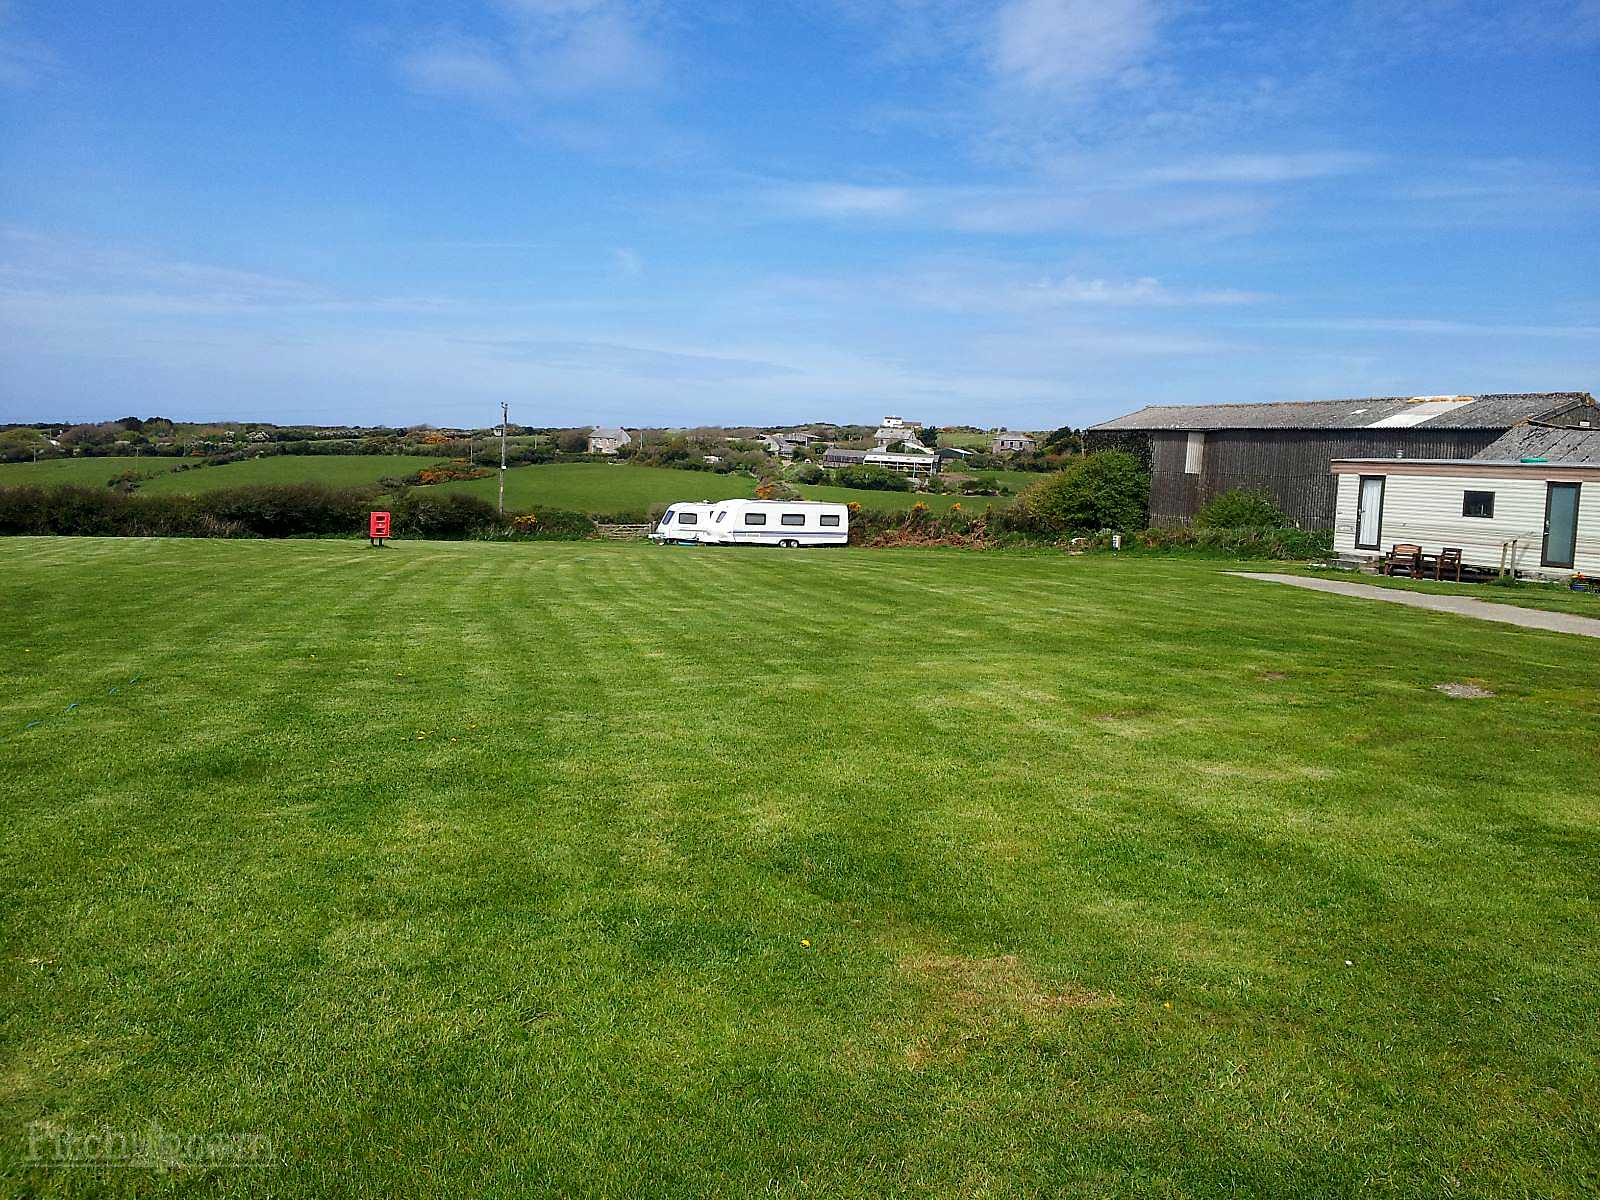 trebyla-farm-camping-and-touring-site